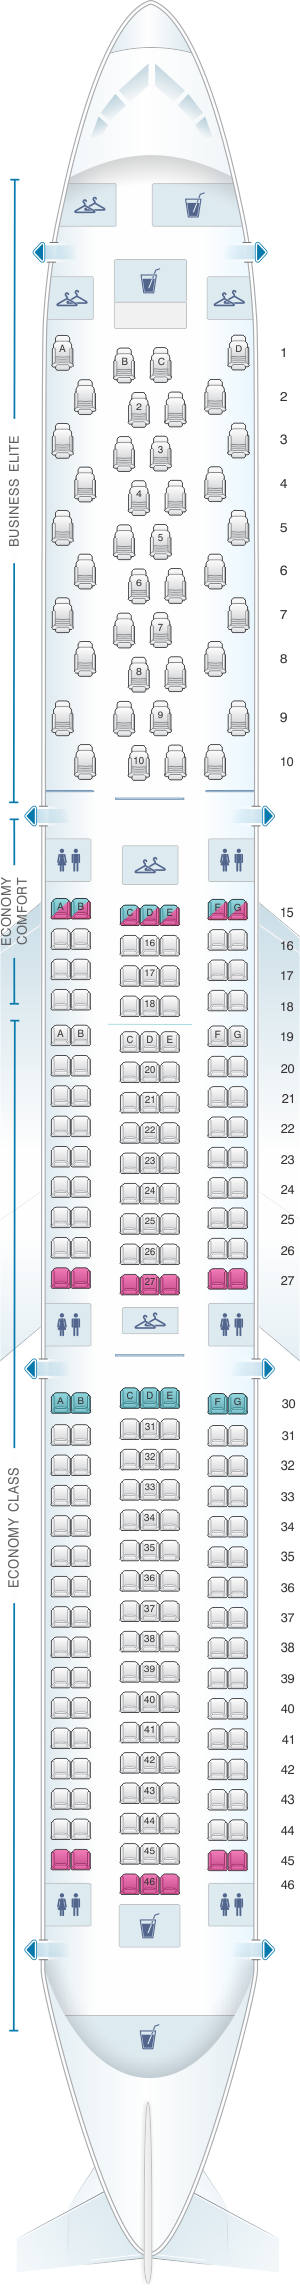 Seat map for Delta Air Lines Boeing B767 400ER (76D)